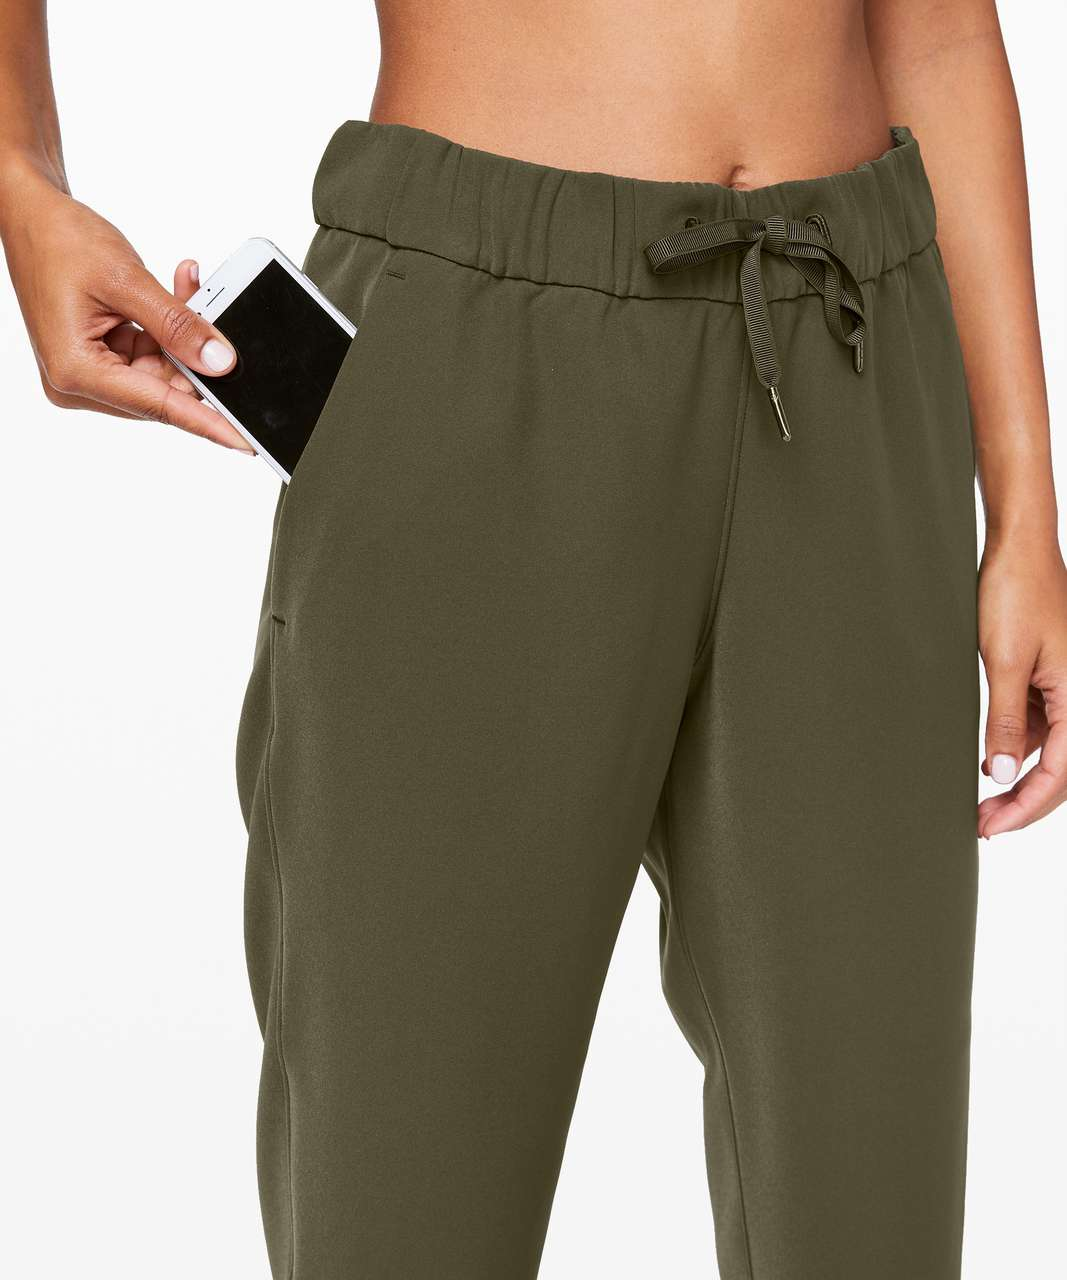 "Lululemon On the Fly Crop *Woven 23"" - Dark Olive"